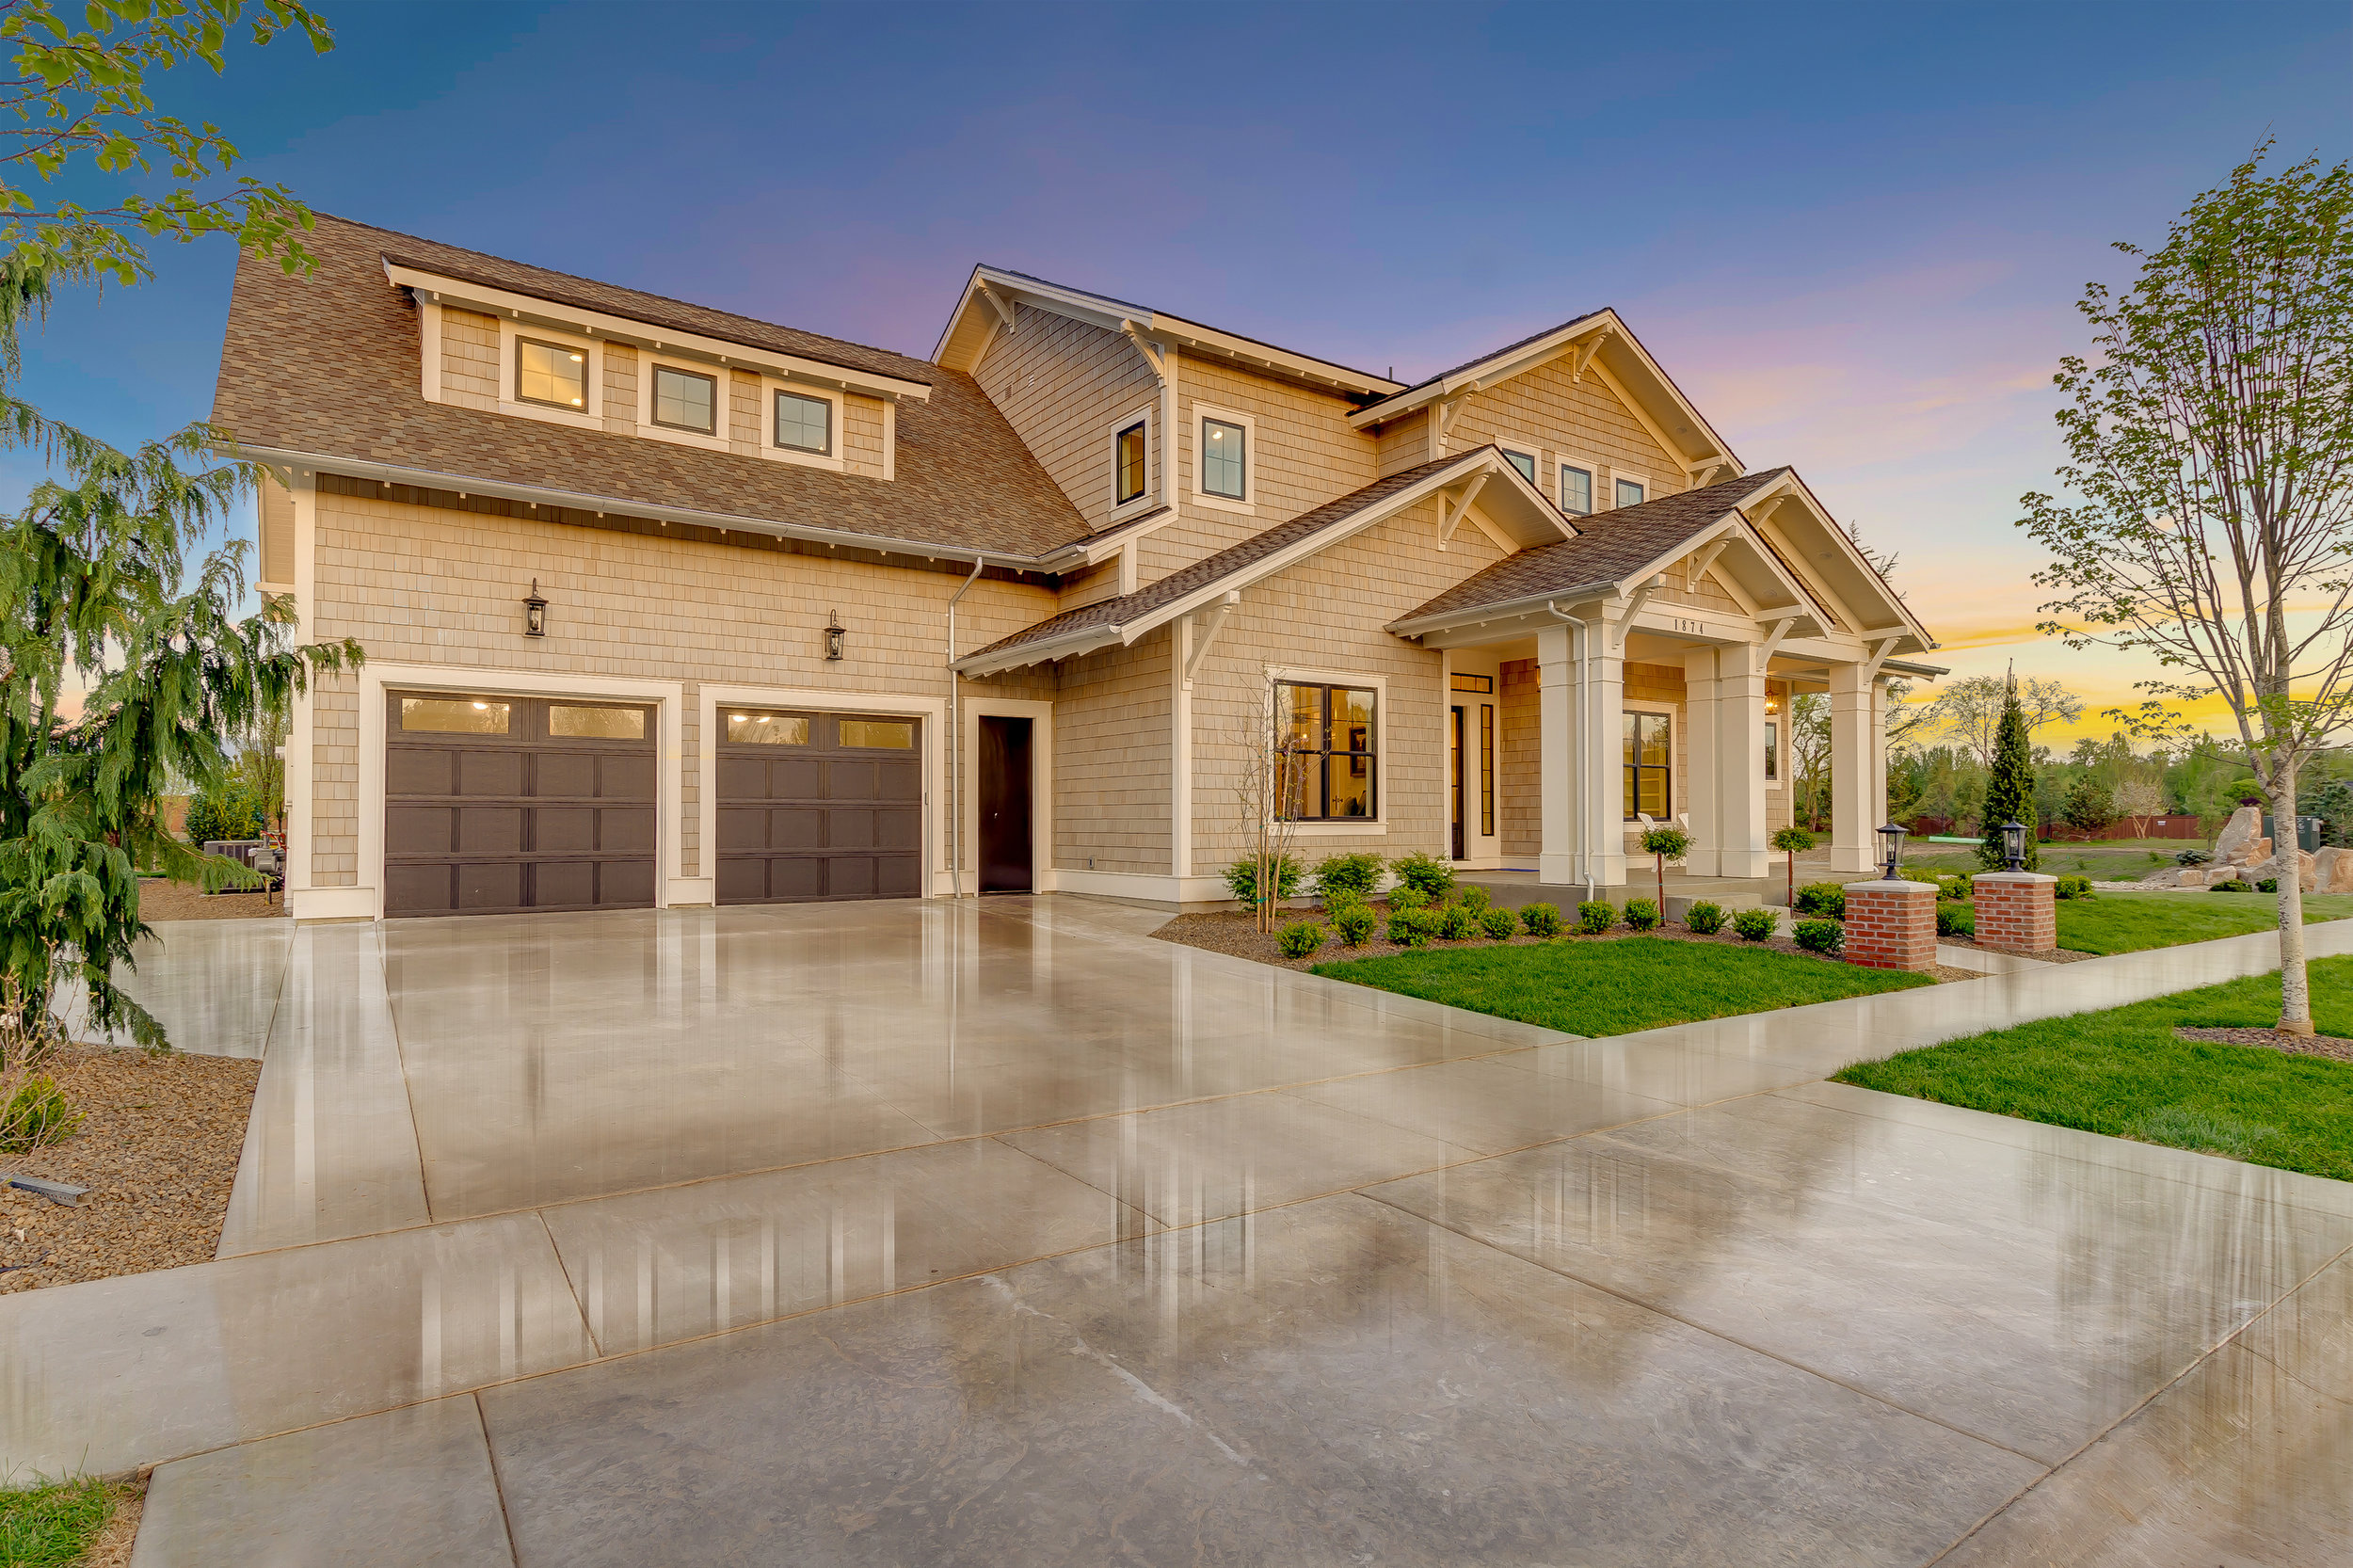 12-10-Front of Home.jpg